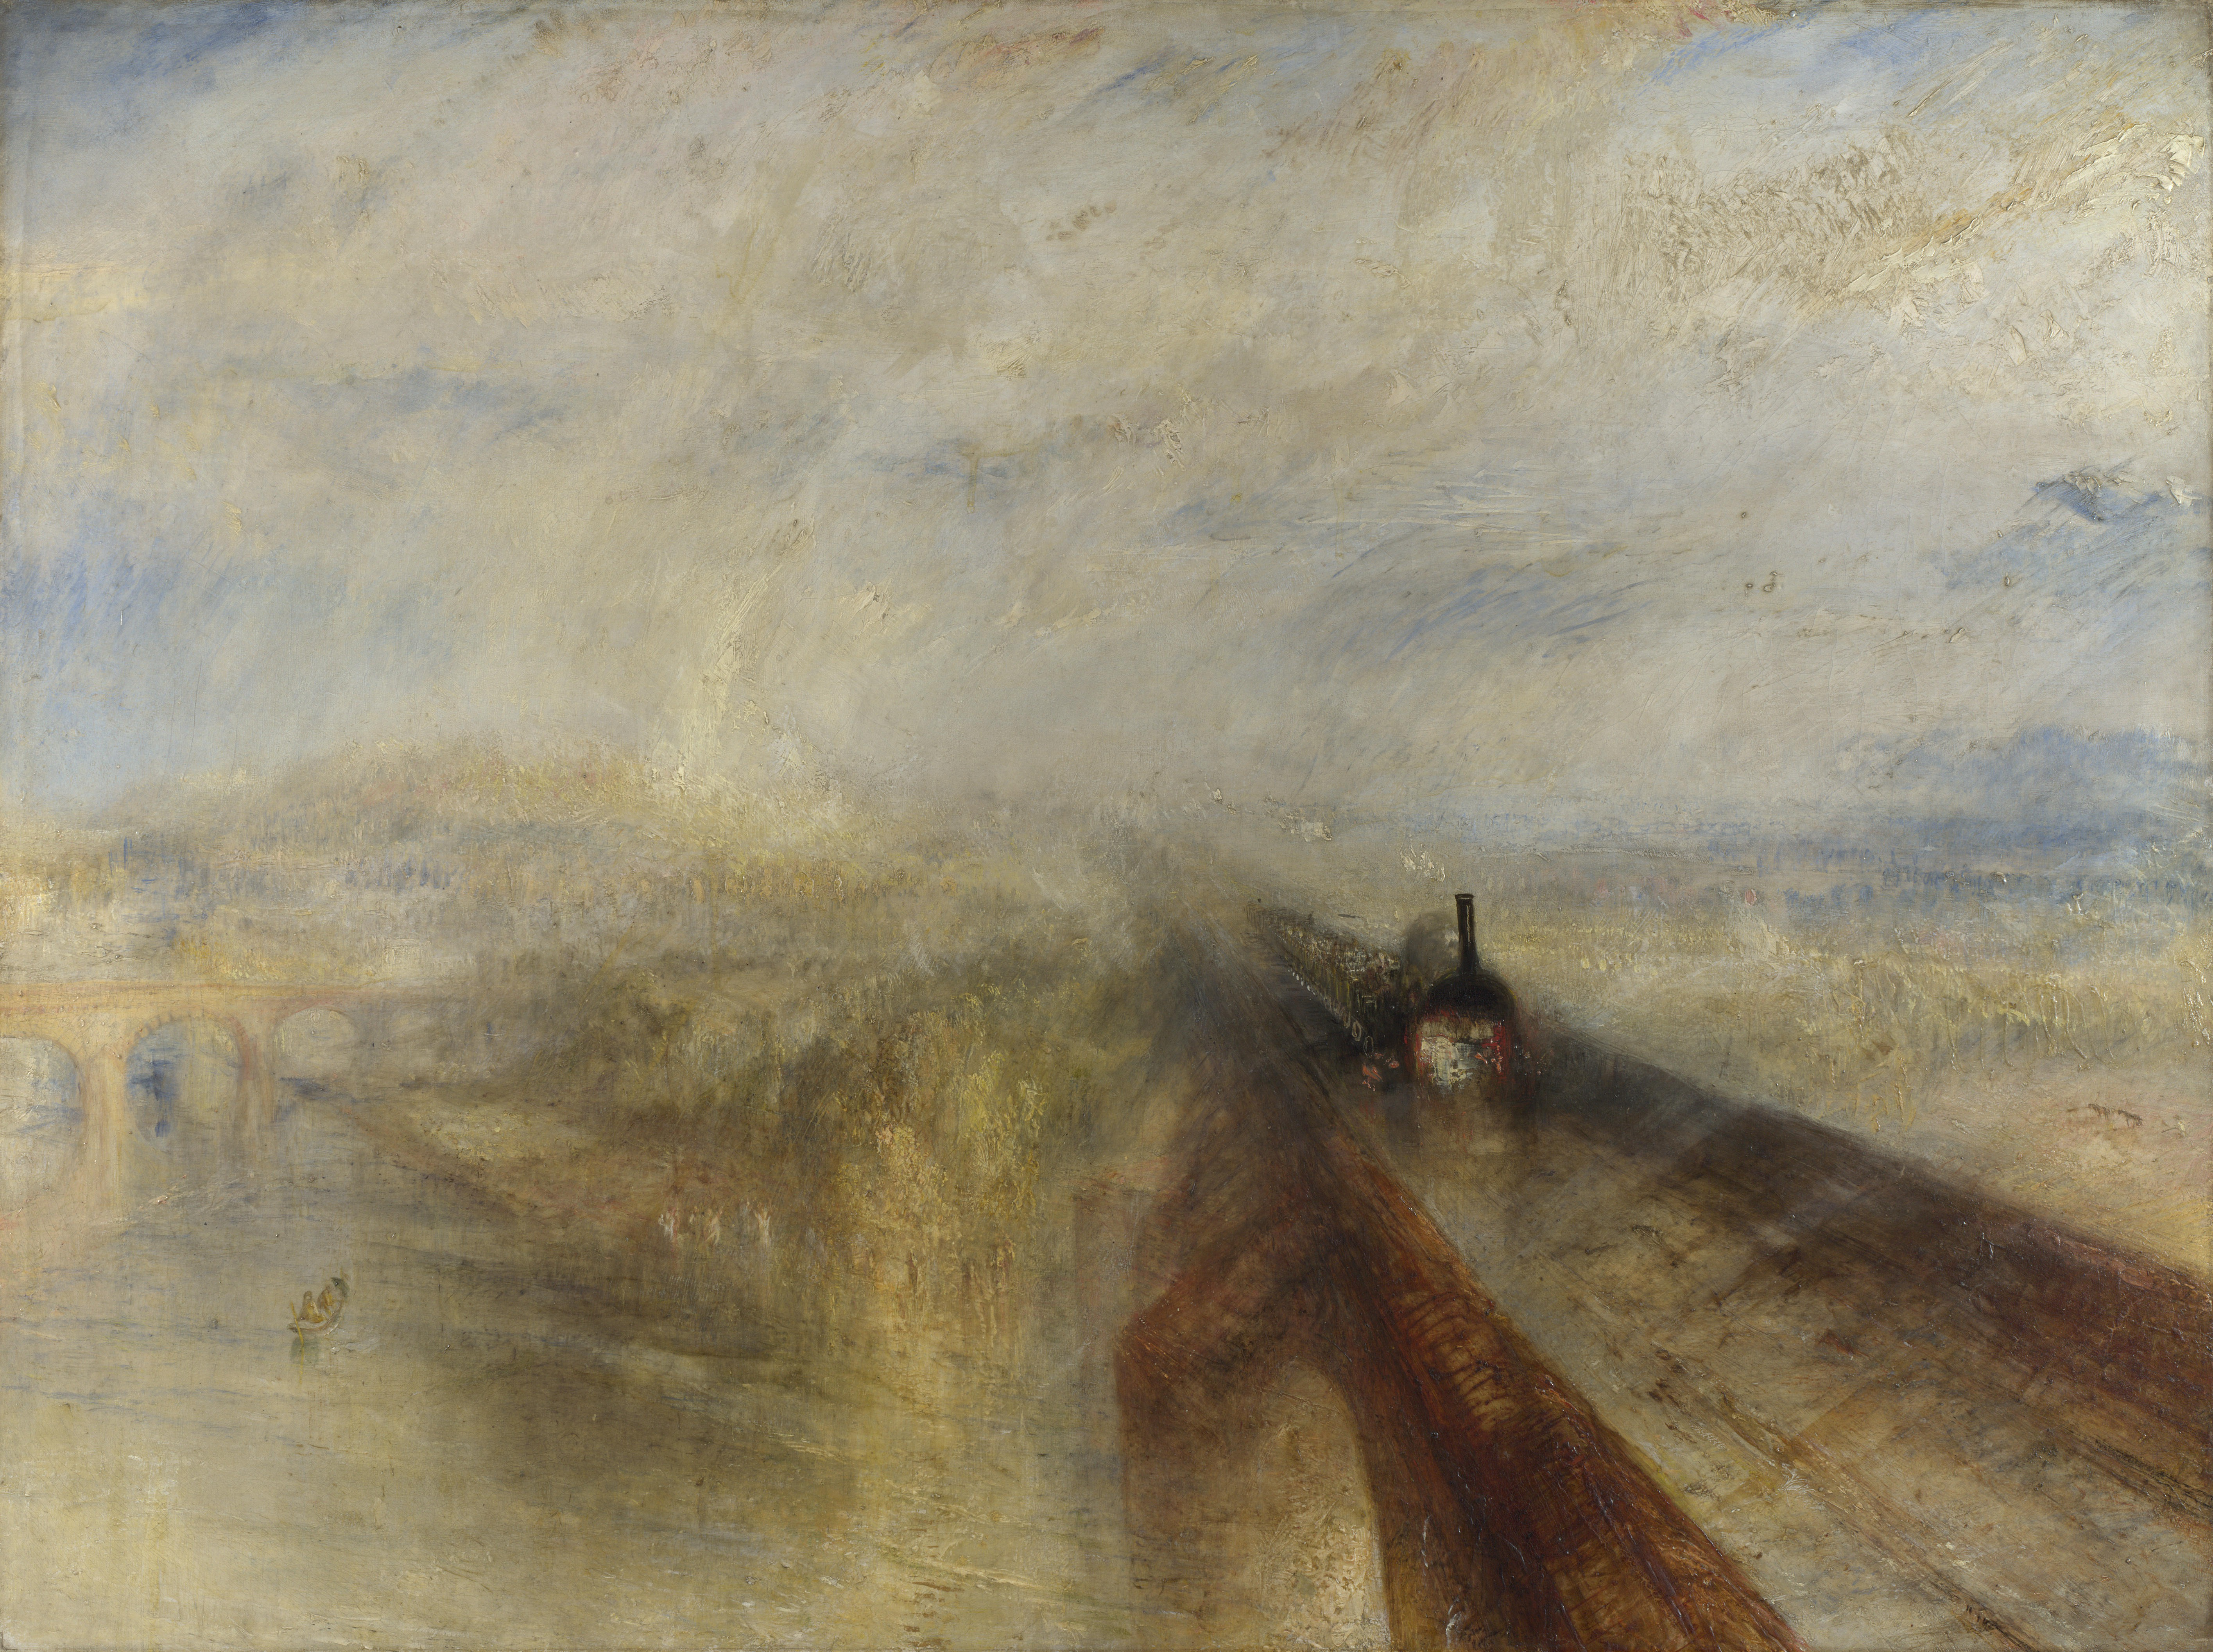 art history news the ey exhibition late turner. Black Bedroom Furniture Sets. Home Design Ideas